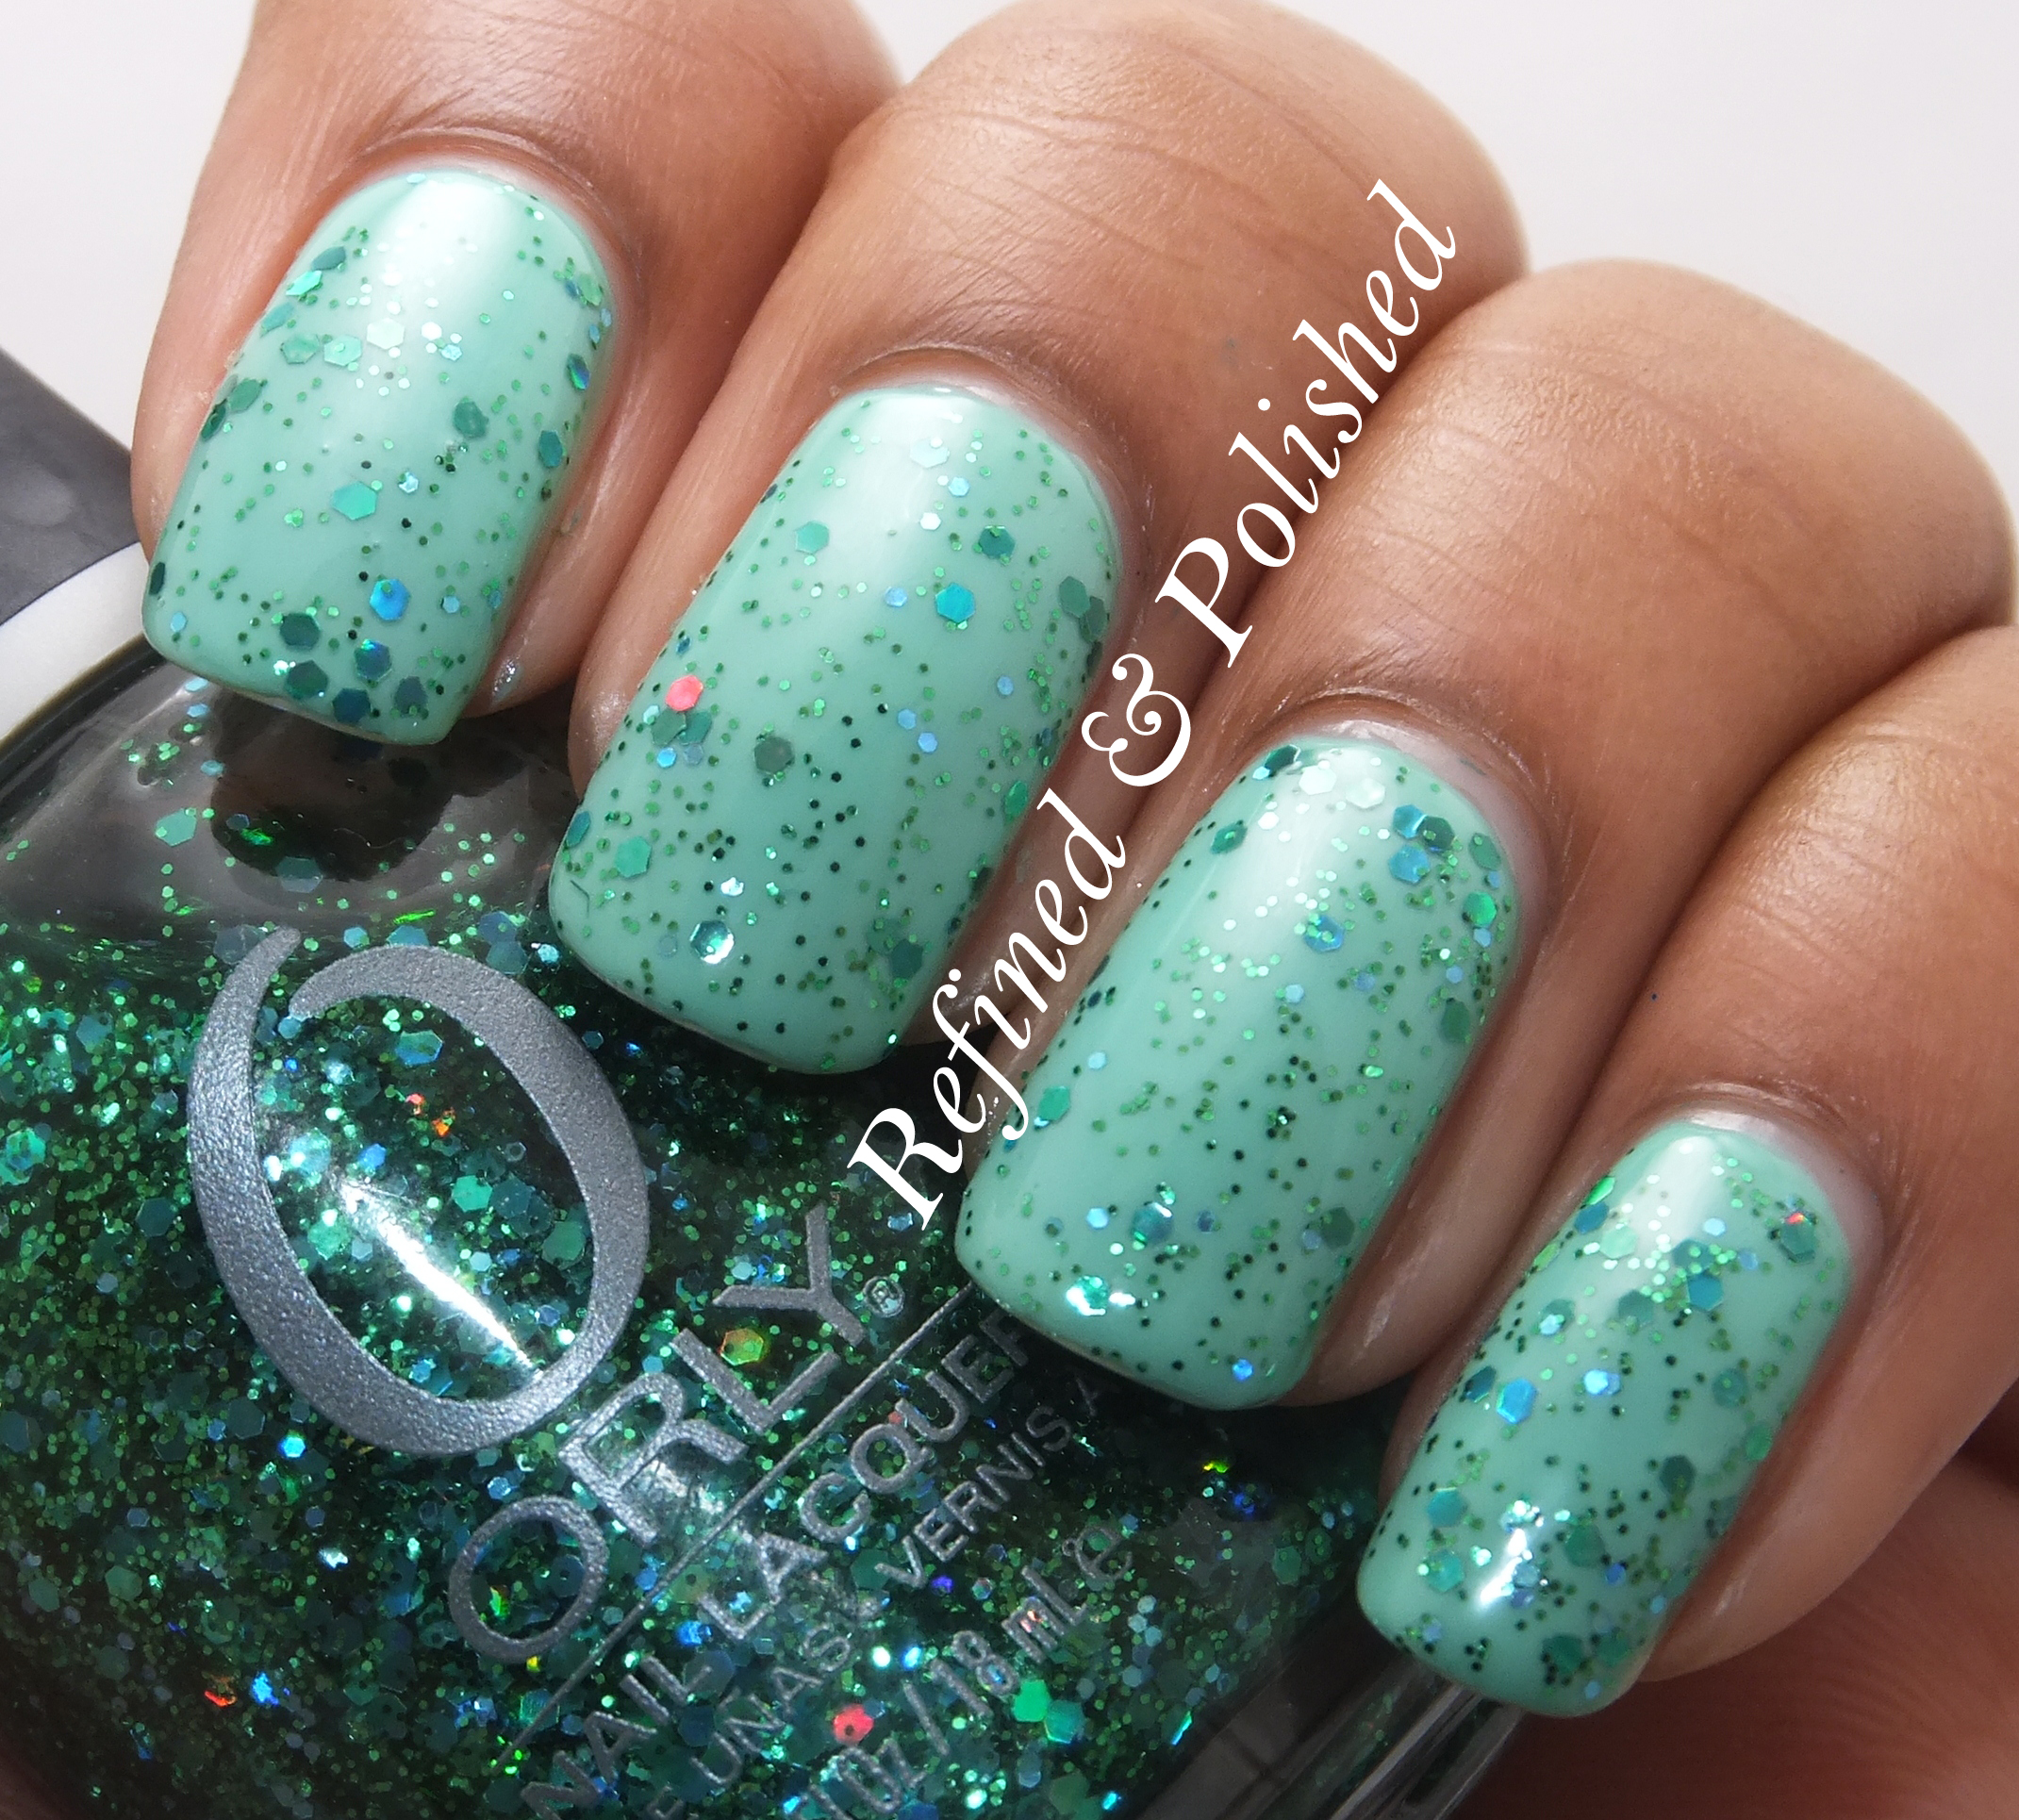 Best Nail Polish Color For Women Over 40 - newhairstylesformen2014.com